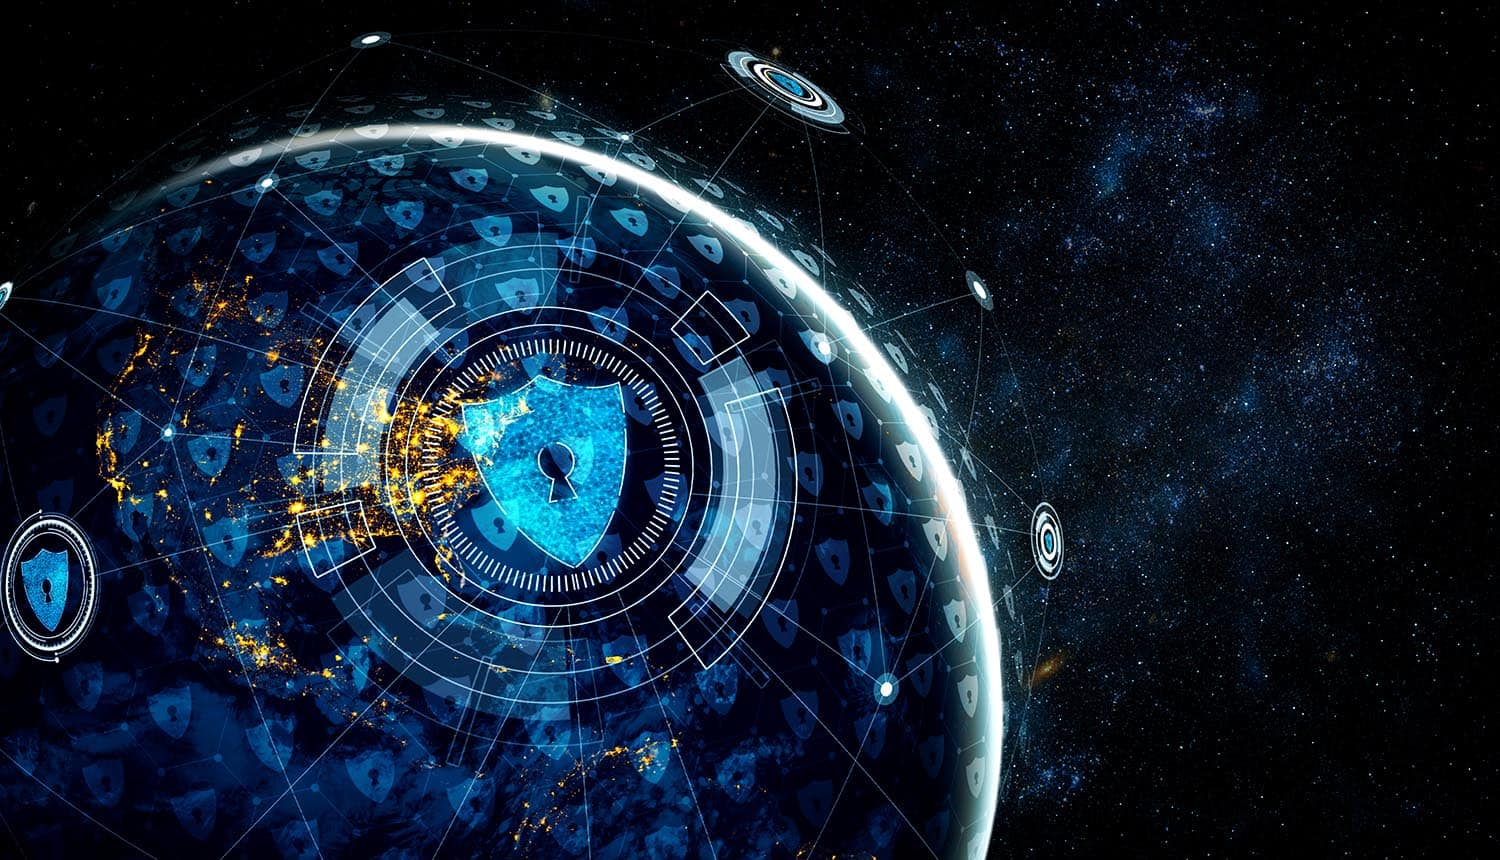 Virtual shields over the globe showing use of SASE for Zero Trust